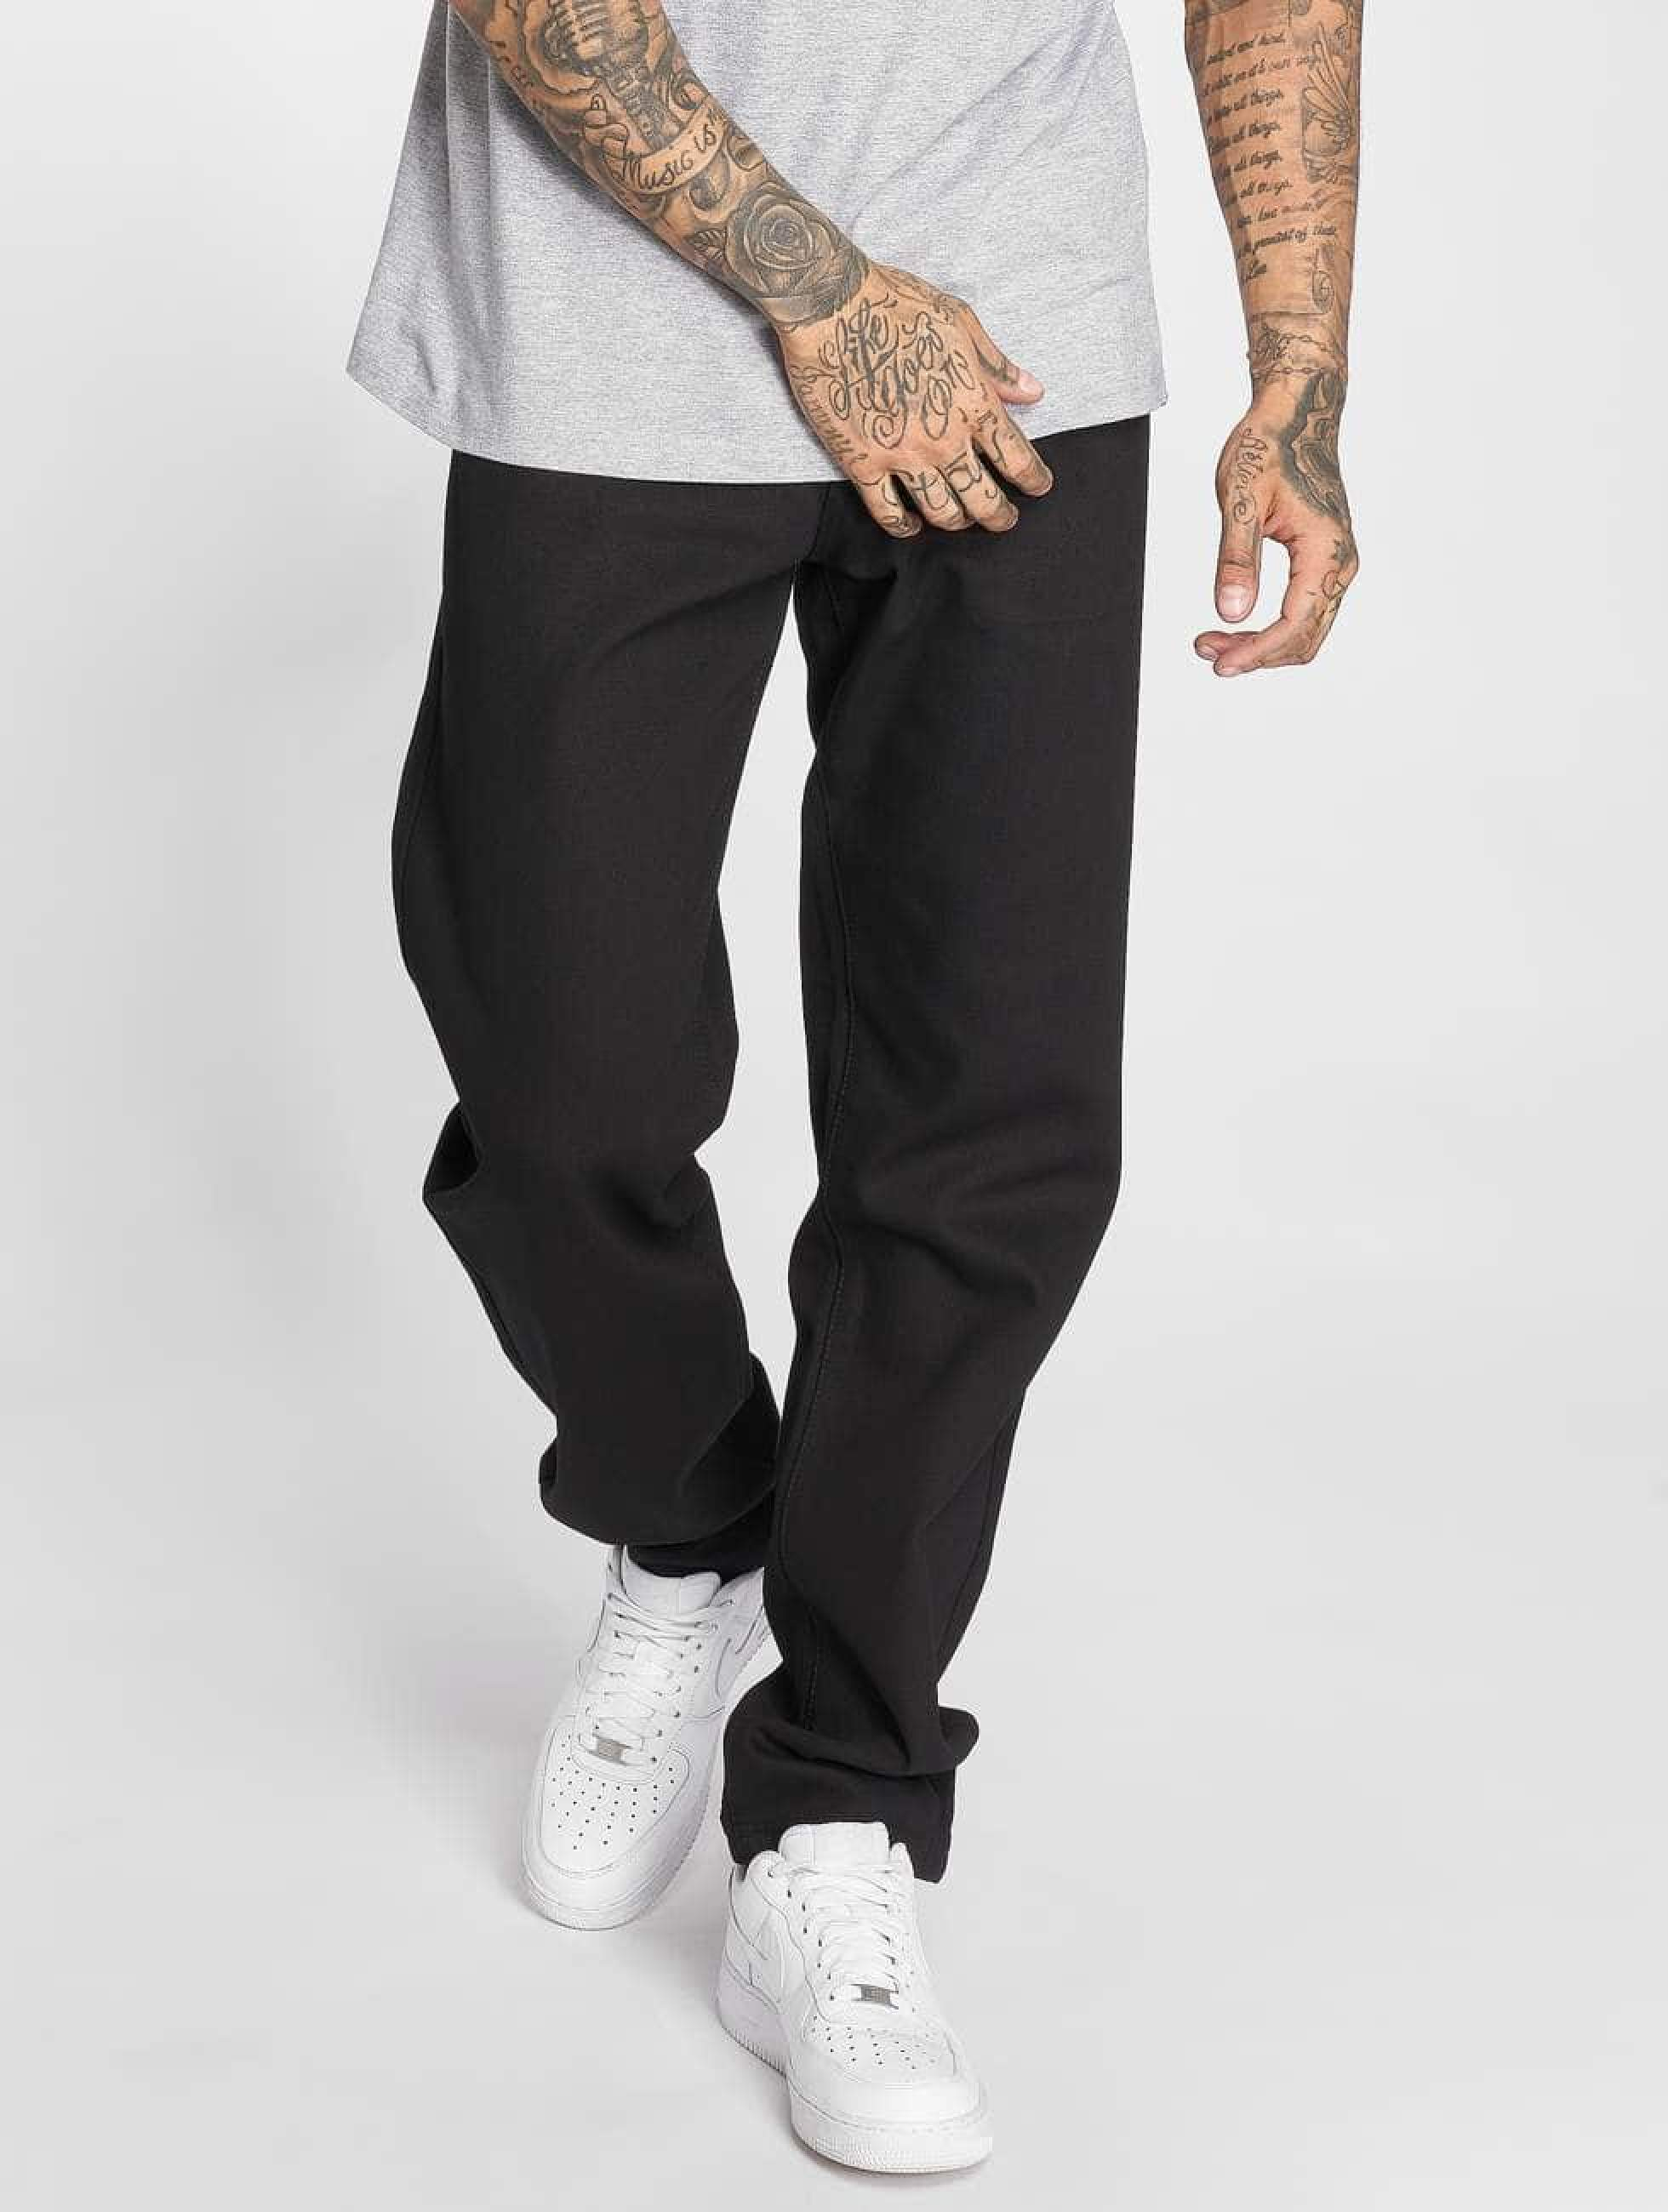 Thug Life / Carrot Fit Jeans B . Denim in black W 33 L 32